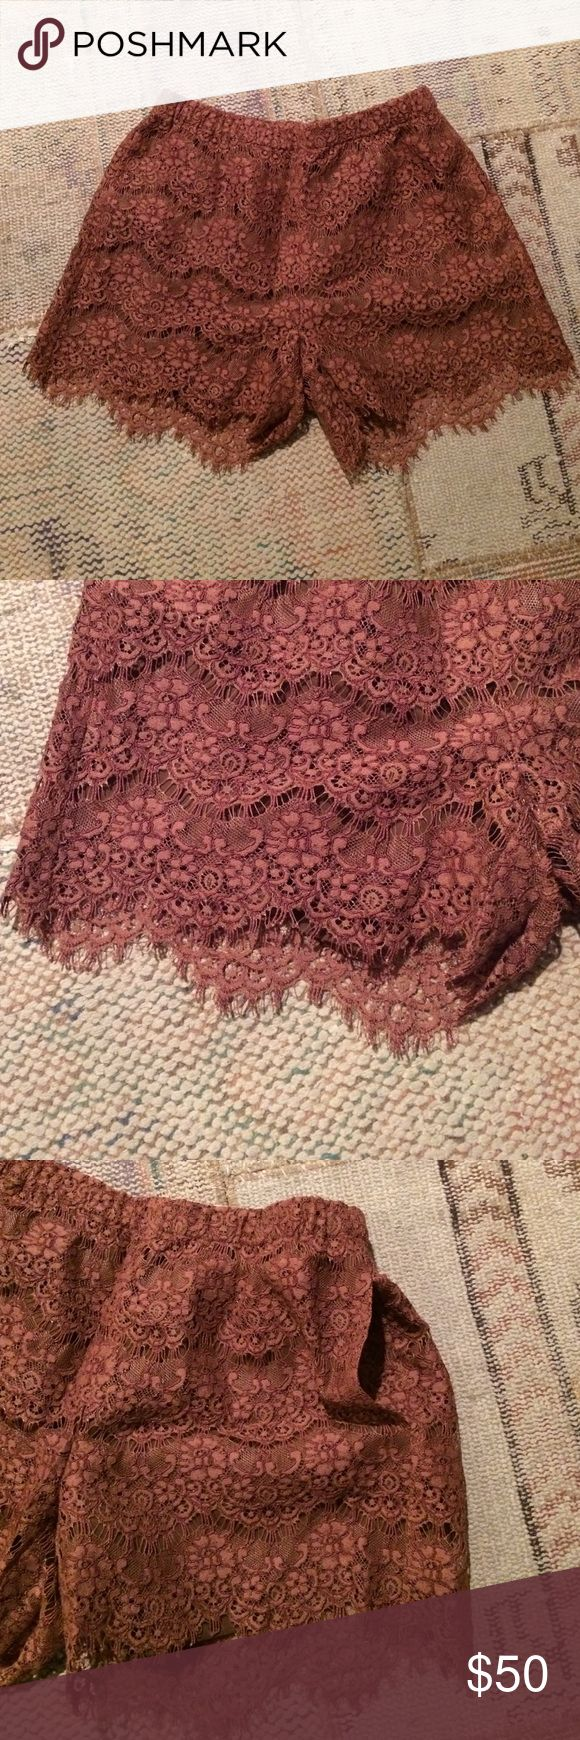 Madewell Lace Shorts Beautiful cinnabar color. RARE! Lace shorts couldn't be cuter with tights and a cozy sweater and clogs. Pockets, too!! Madewell Shorts